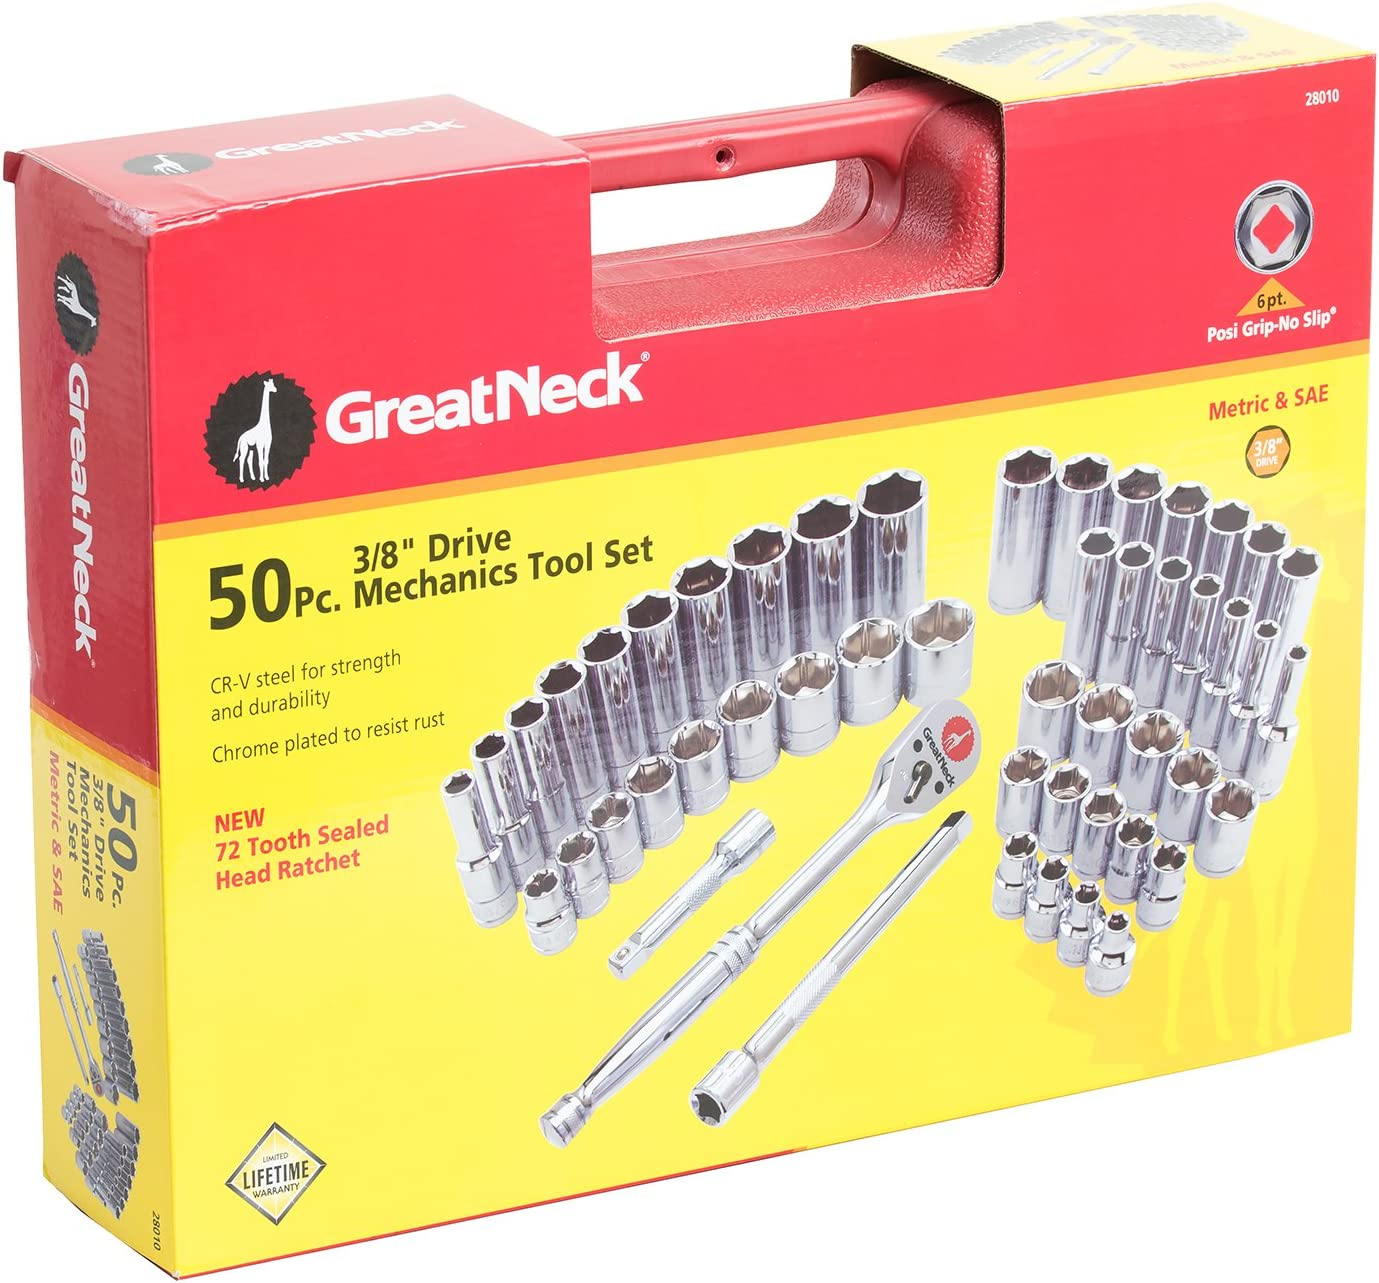 GreatNeck 28010 SAE and Metric Mechanics Tool Set 3//8-Inch Drive 50-Piece